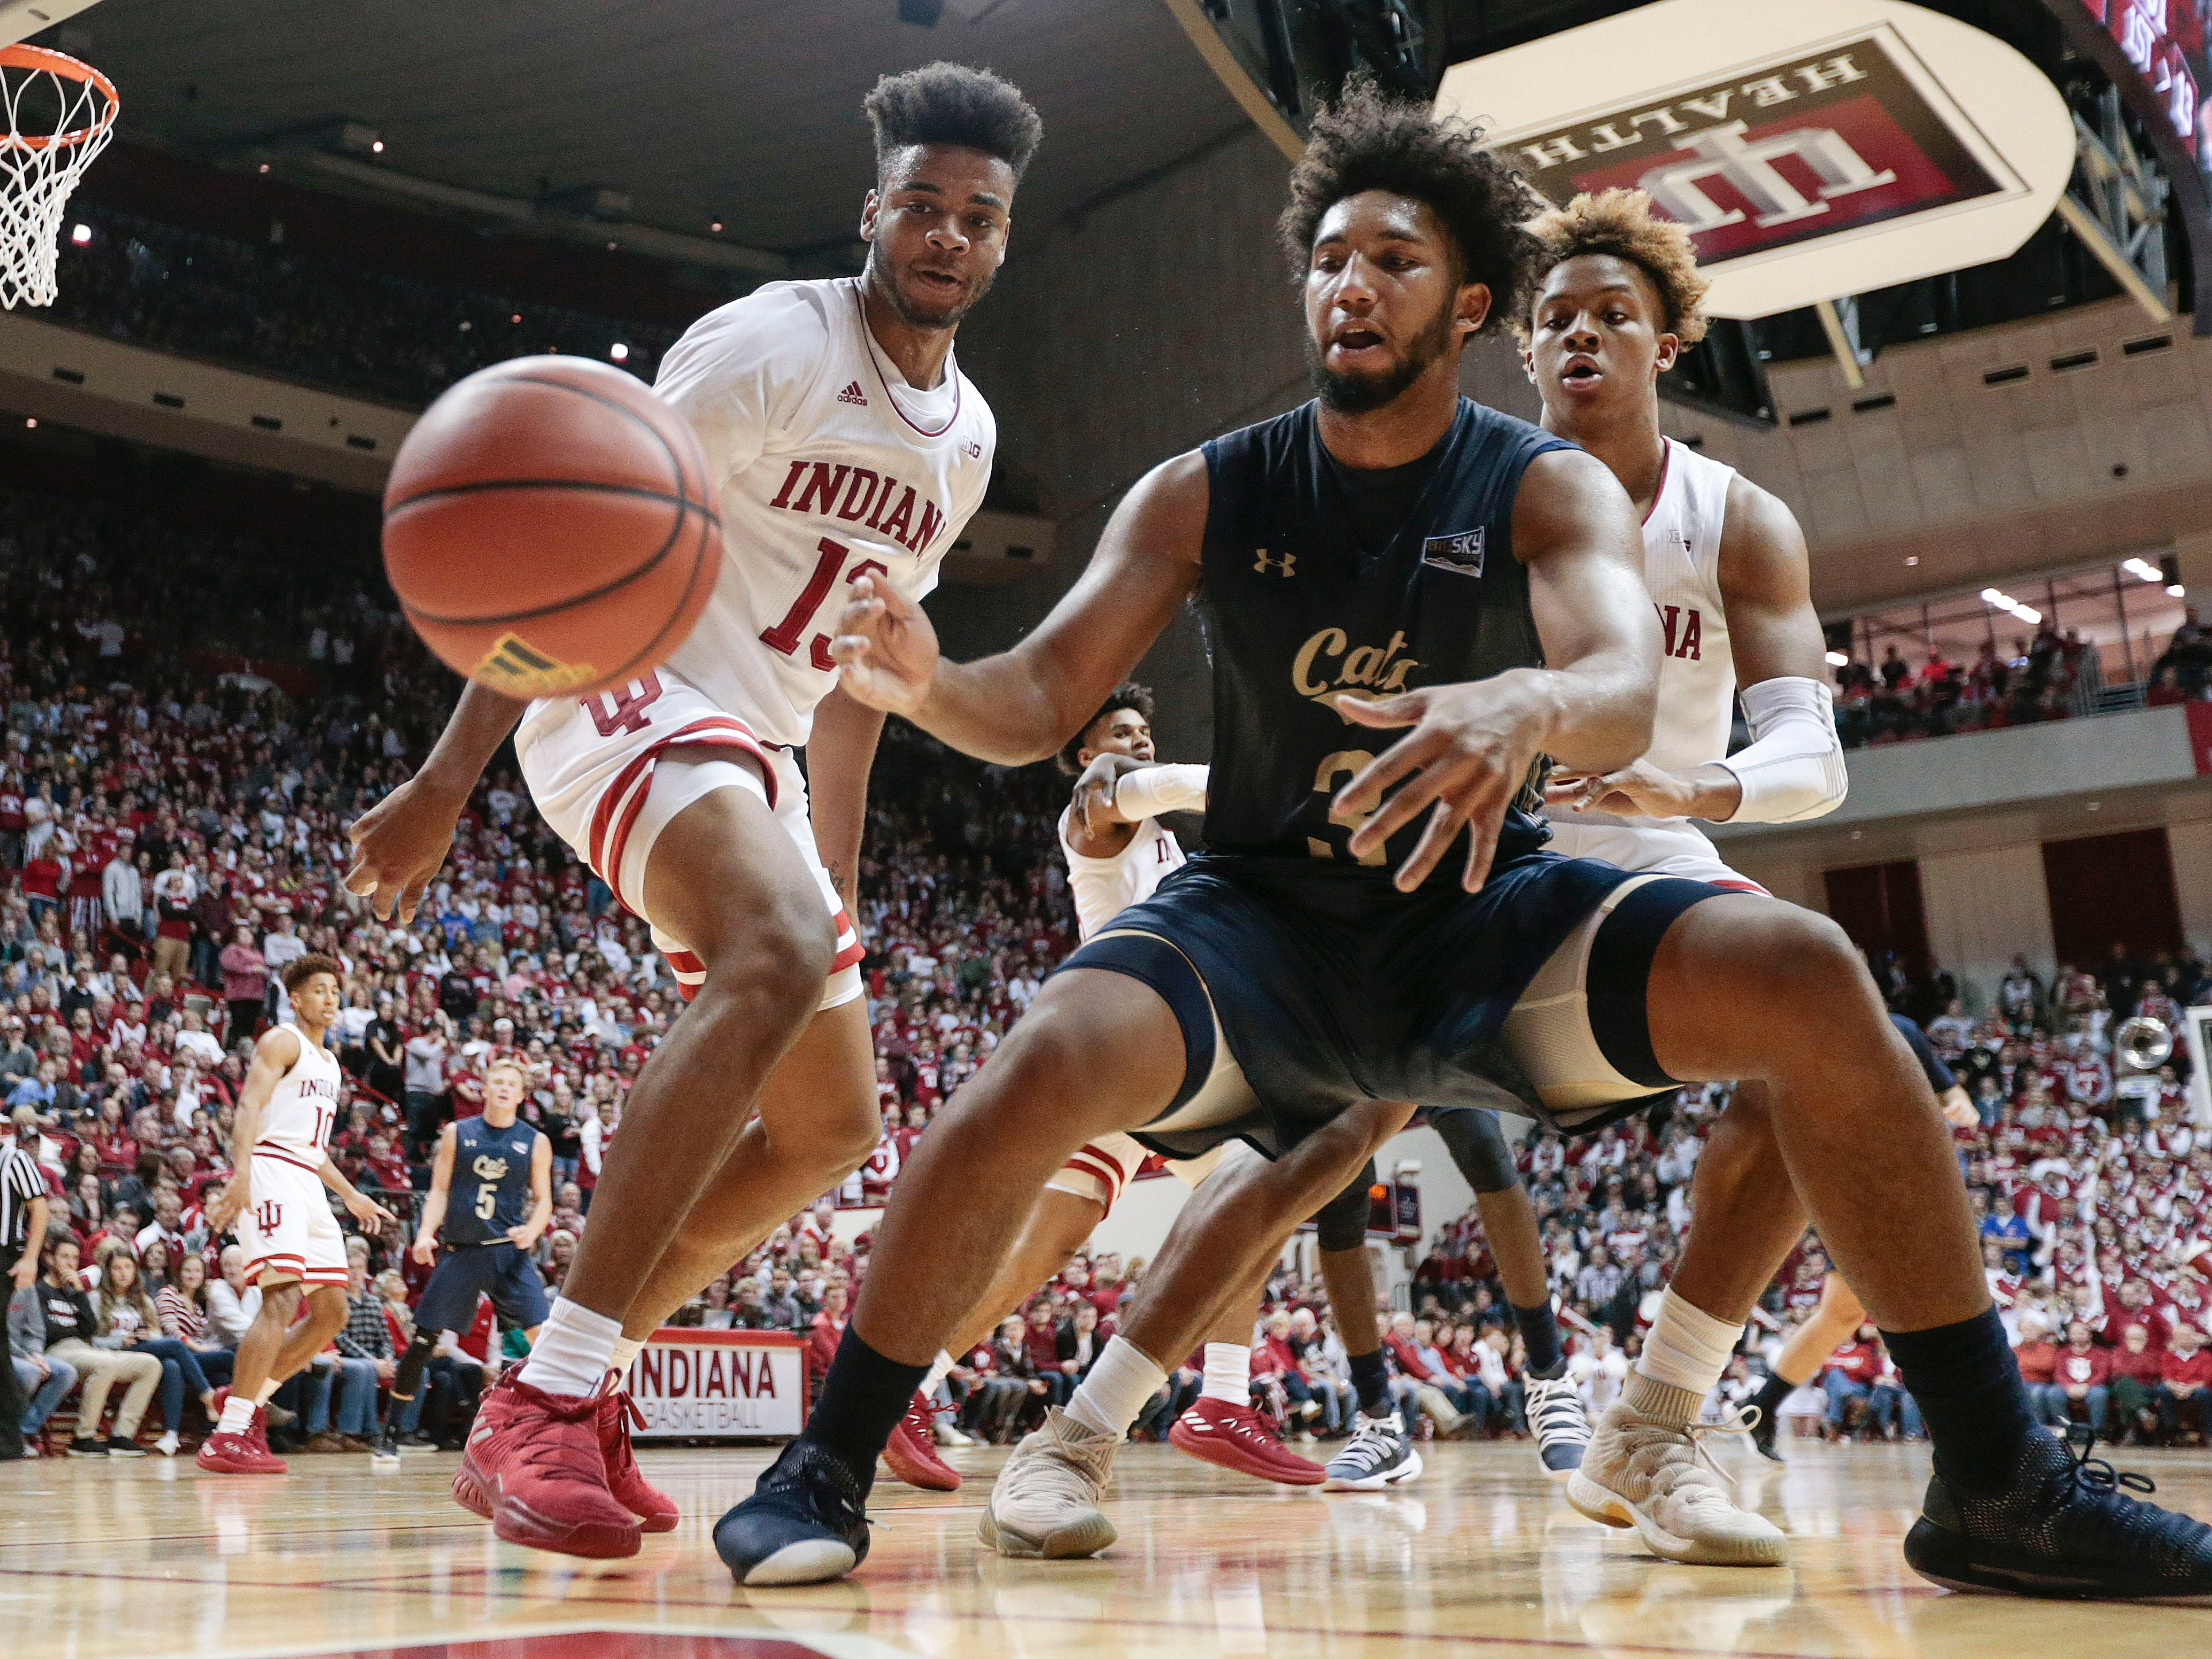 Montana State guard Tyler Hall, center, lets the ball go out of bounds in front of Indiana defenders Juwan Morgan, left, and Romeo Langford during the first half of an NCAA college basketball game in Bloomington, Ind., Friday, Nov. 9, 2018. (AP Photo/AJ Mast)